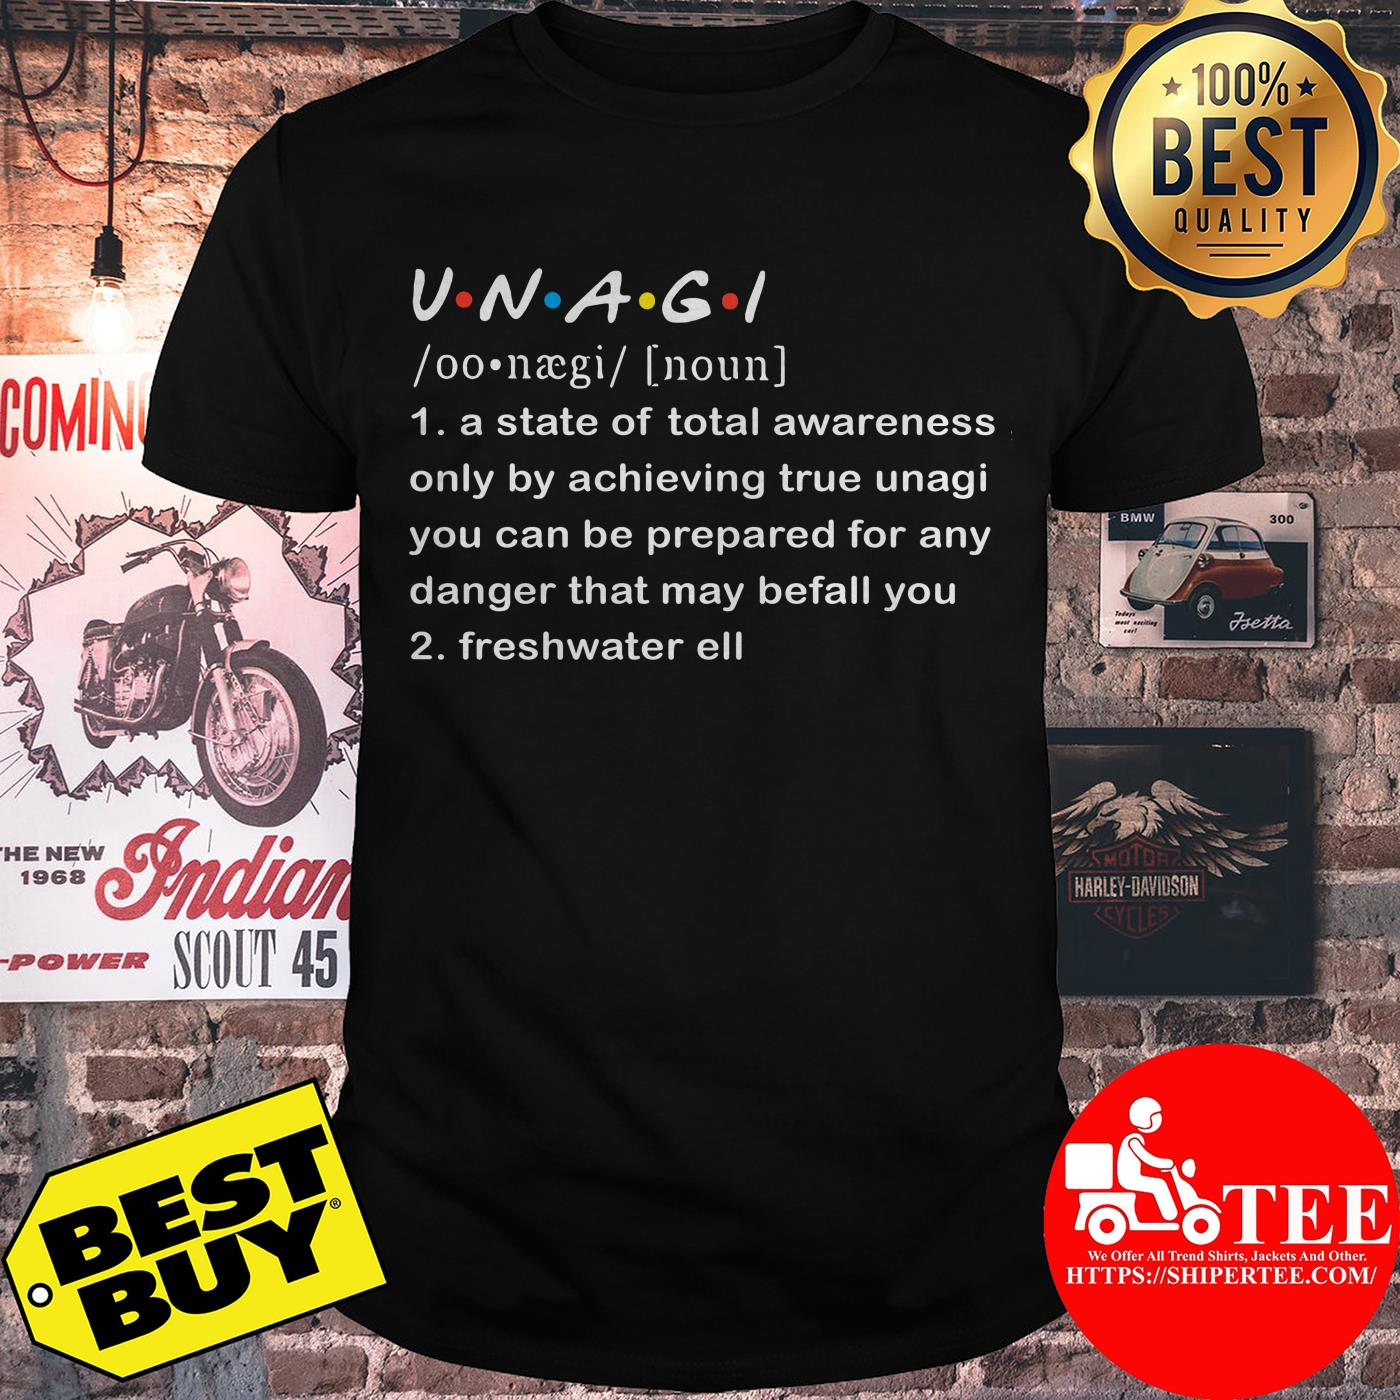 UNAGI meaning a state of total awareness only by achieving true unagi shirt